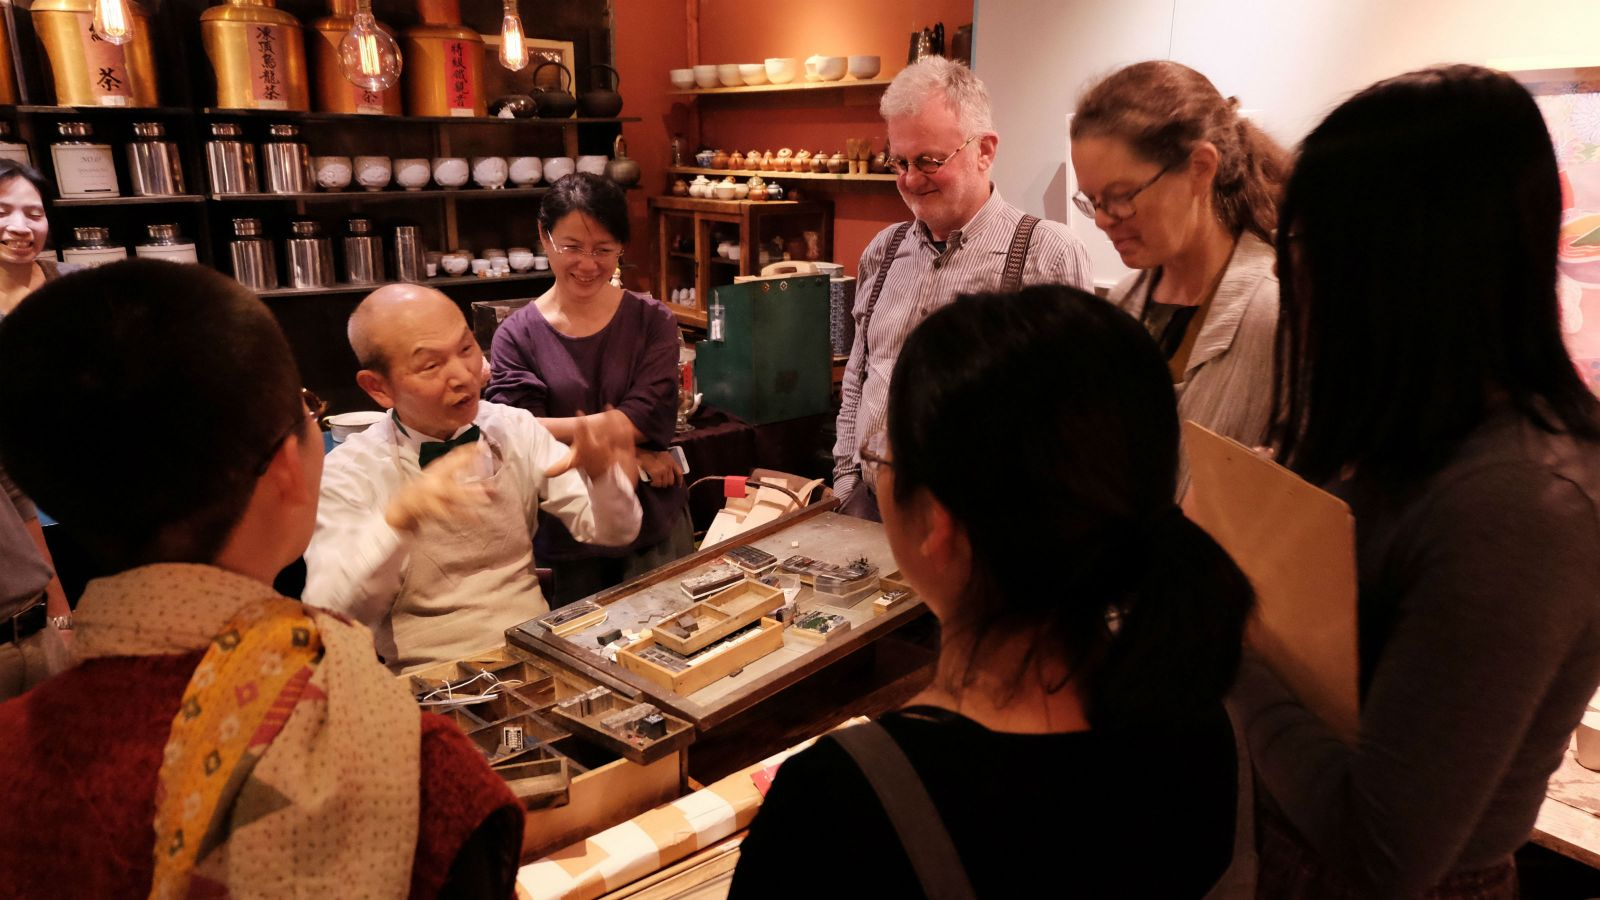 Wai-te-ata team enjoy a typesetting demostration by Mr. Wu of Letterpress Teahouse